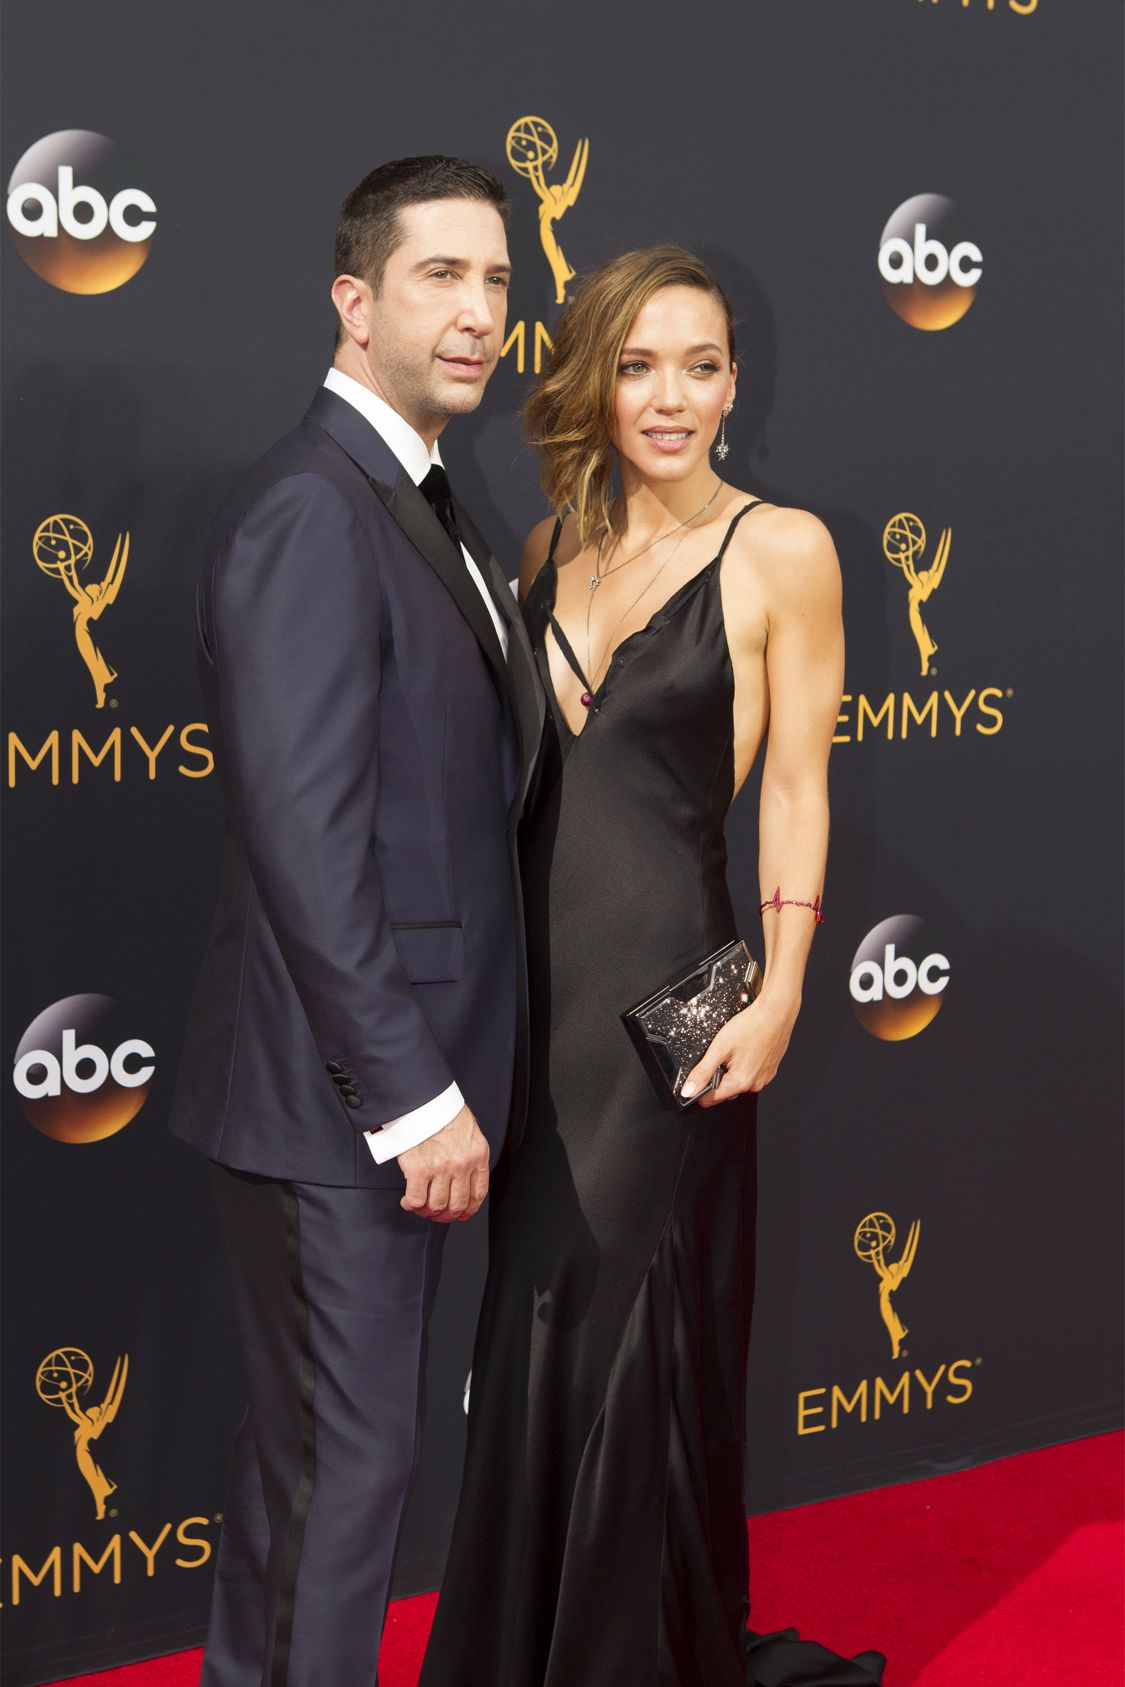 """THE 68TH EMMY(r) AWARDS - """"The 68th Emmy Awards"""" broadcasts live from The Microsoft Theater in Los Angeles, Sunday, September 18 (7:00-11:00 p.m. EDT/4:00-8:00 p.m. PDT), on ABC and is hosted by Jimmy Kimmel. (ABC/Rick Rowell) DAVID SCHWIMMER, ZOE BUCKMAN"""